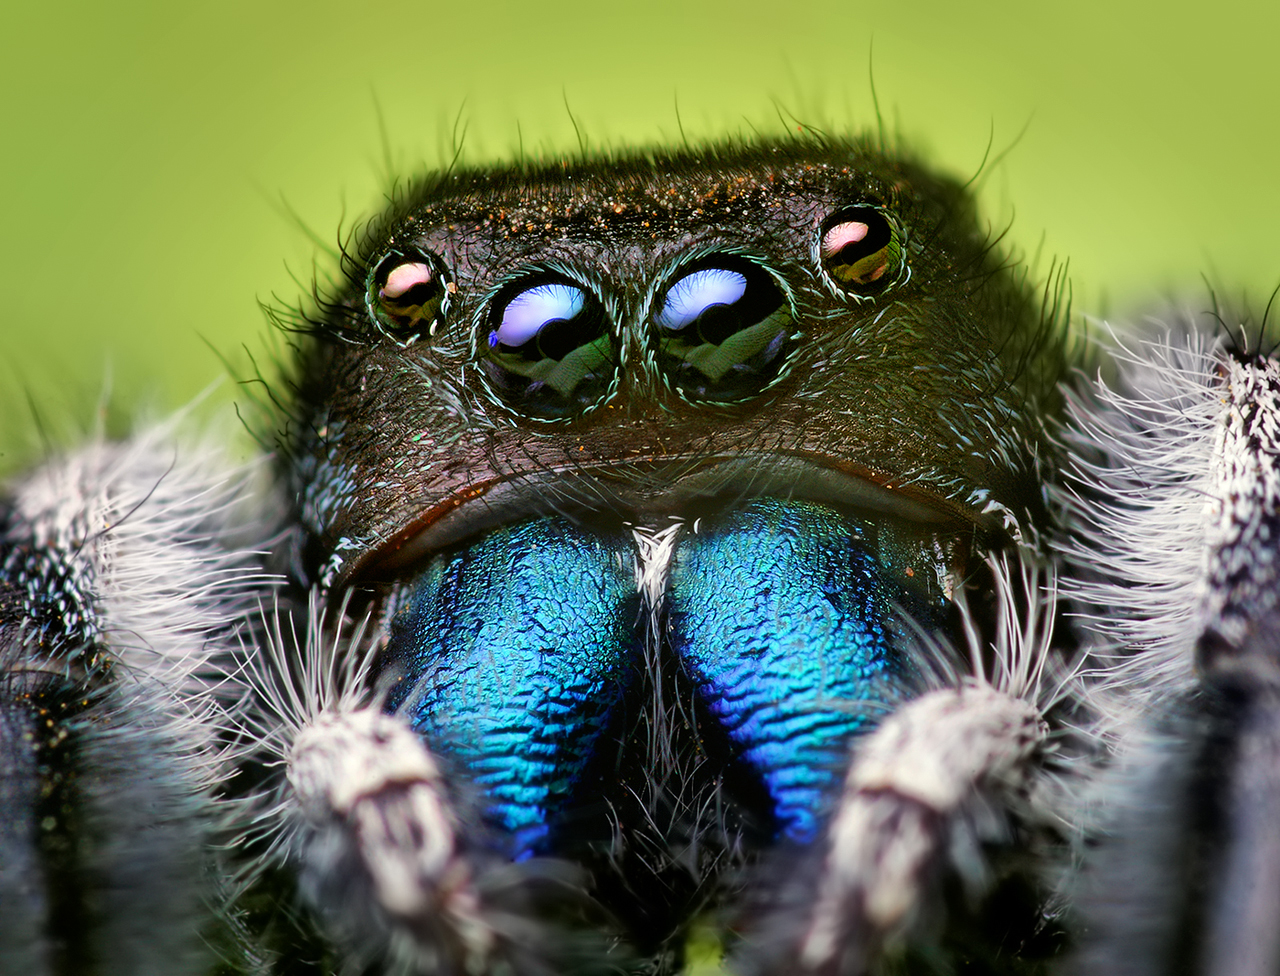 2929487787 fd7c506f85 o Bug close up, beautiful spider photos by Shahan [28 Pics]